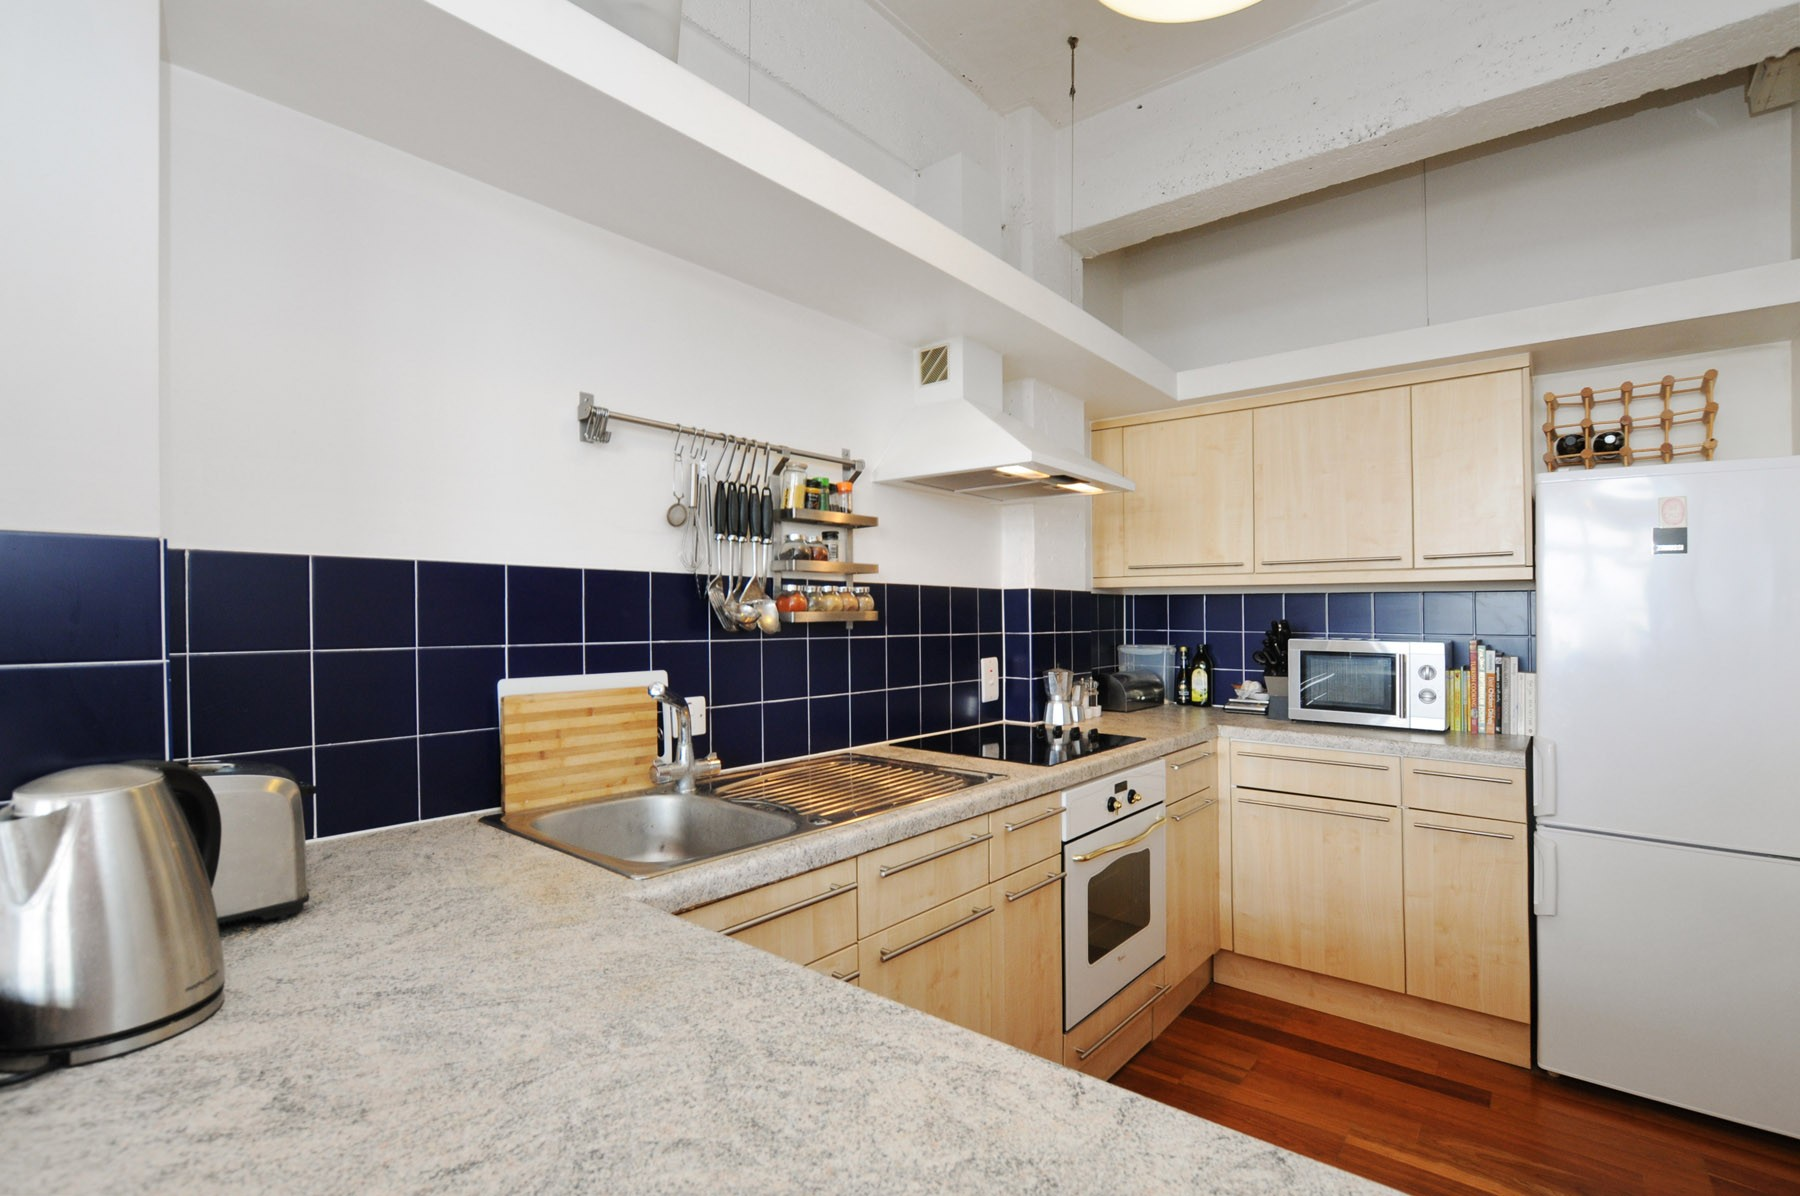 London Academic Apartment Rental - Kitchen